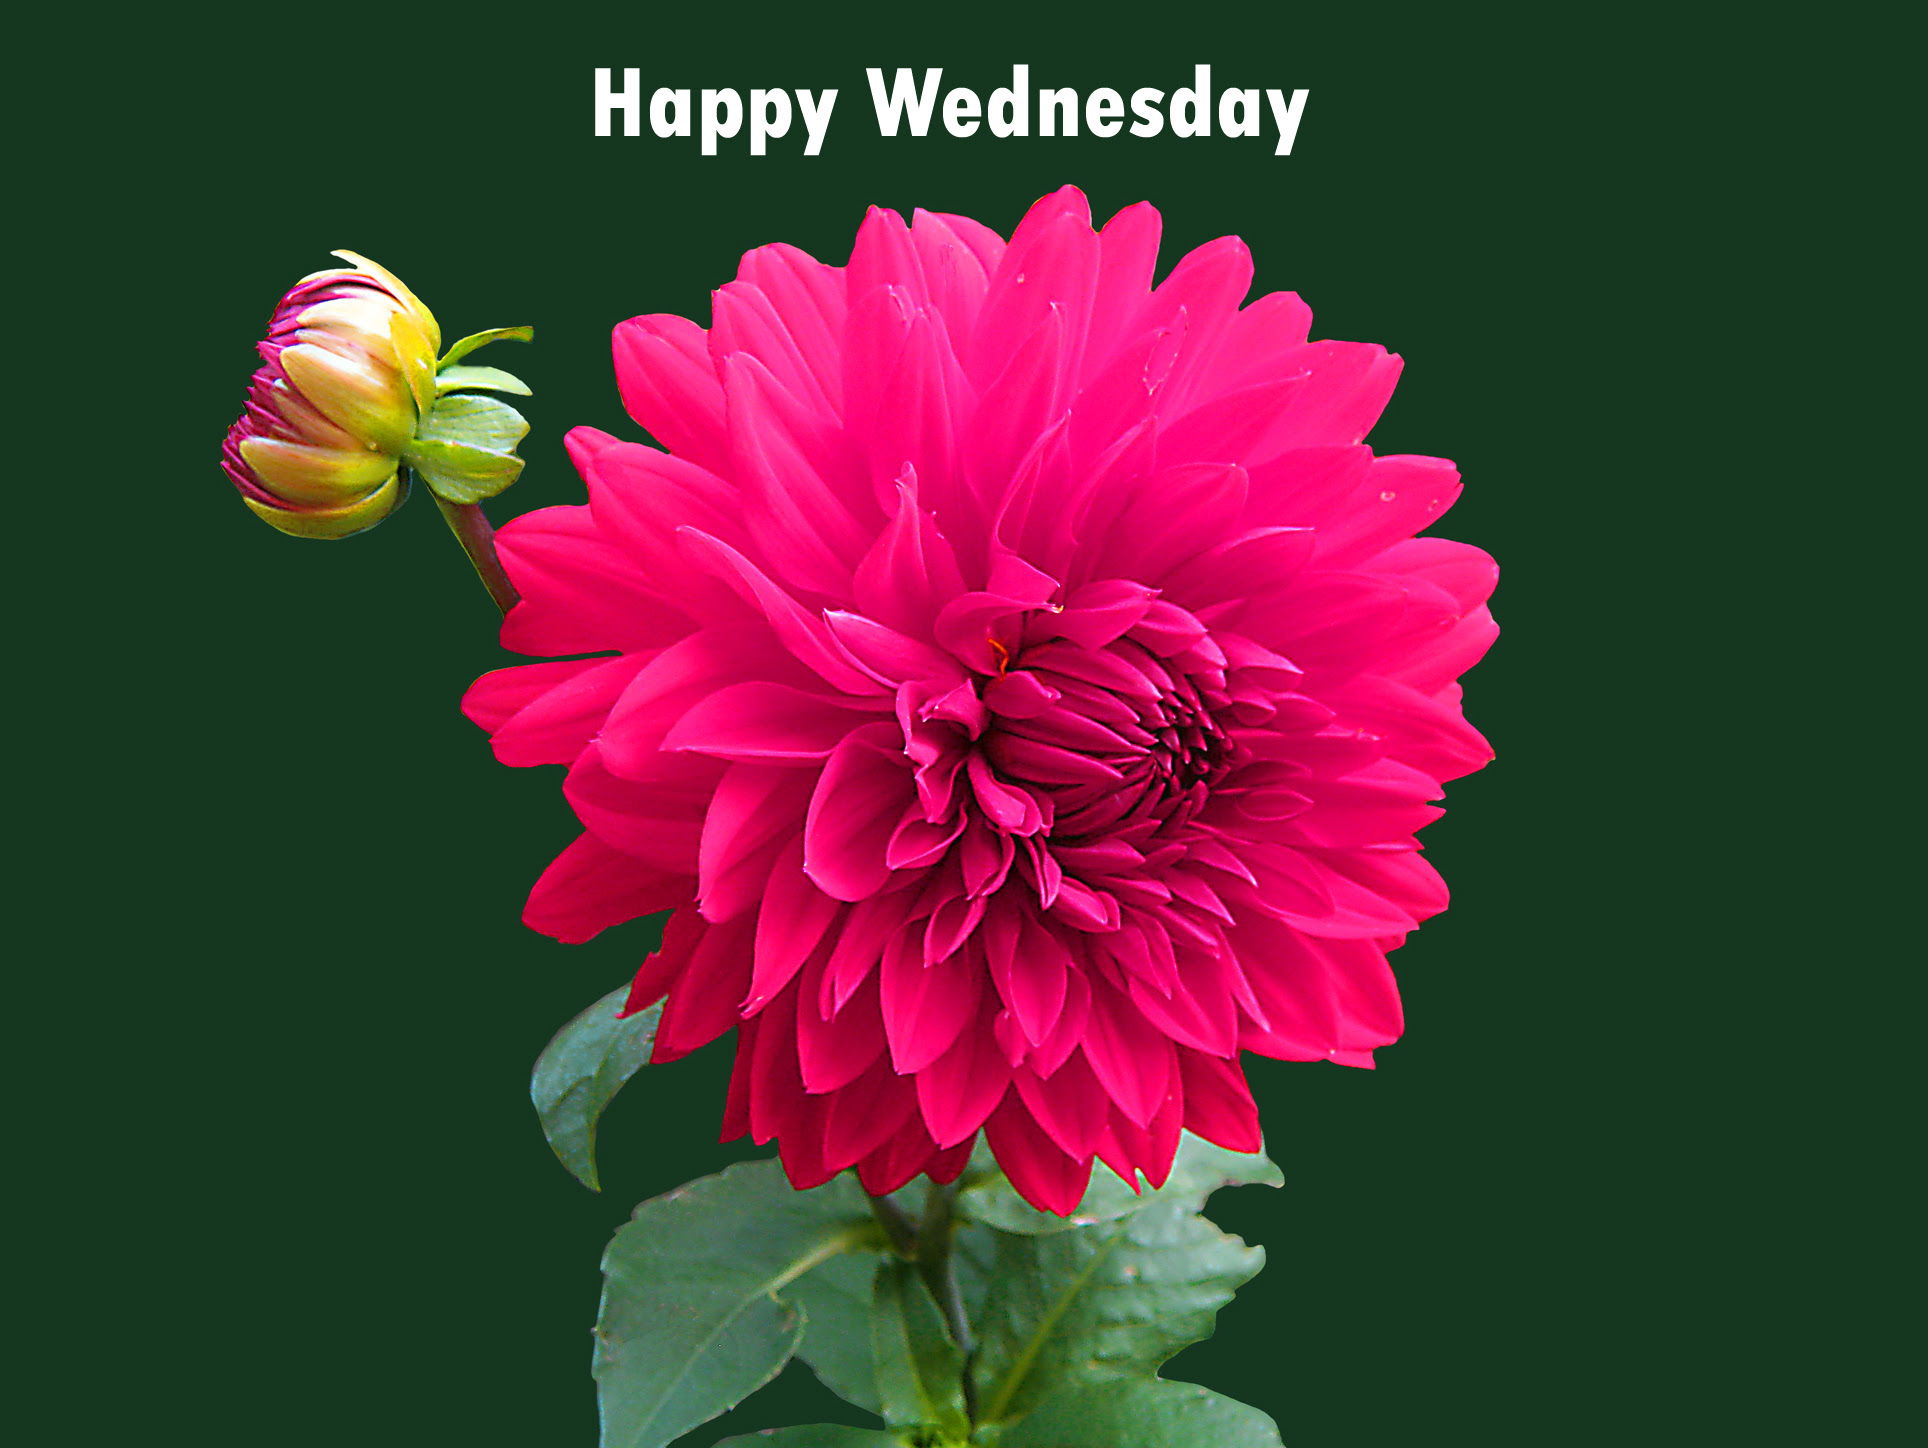 211 Good Morning Wednesday Images Greetings Picture For Whatsapp